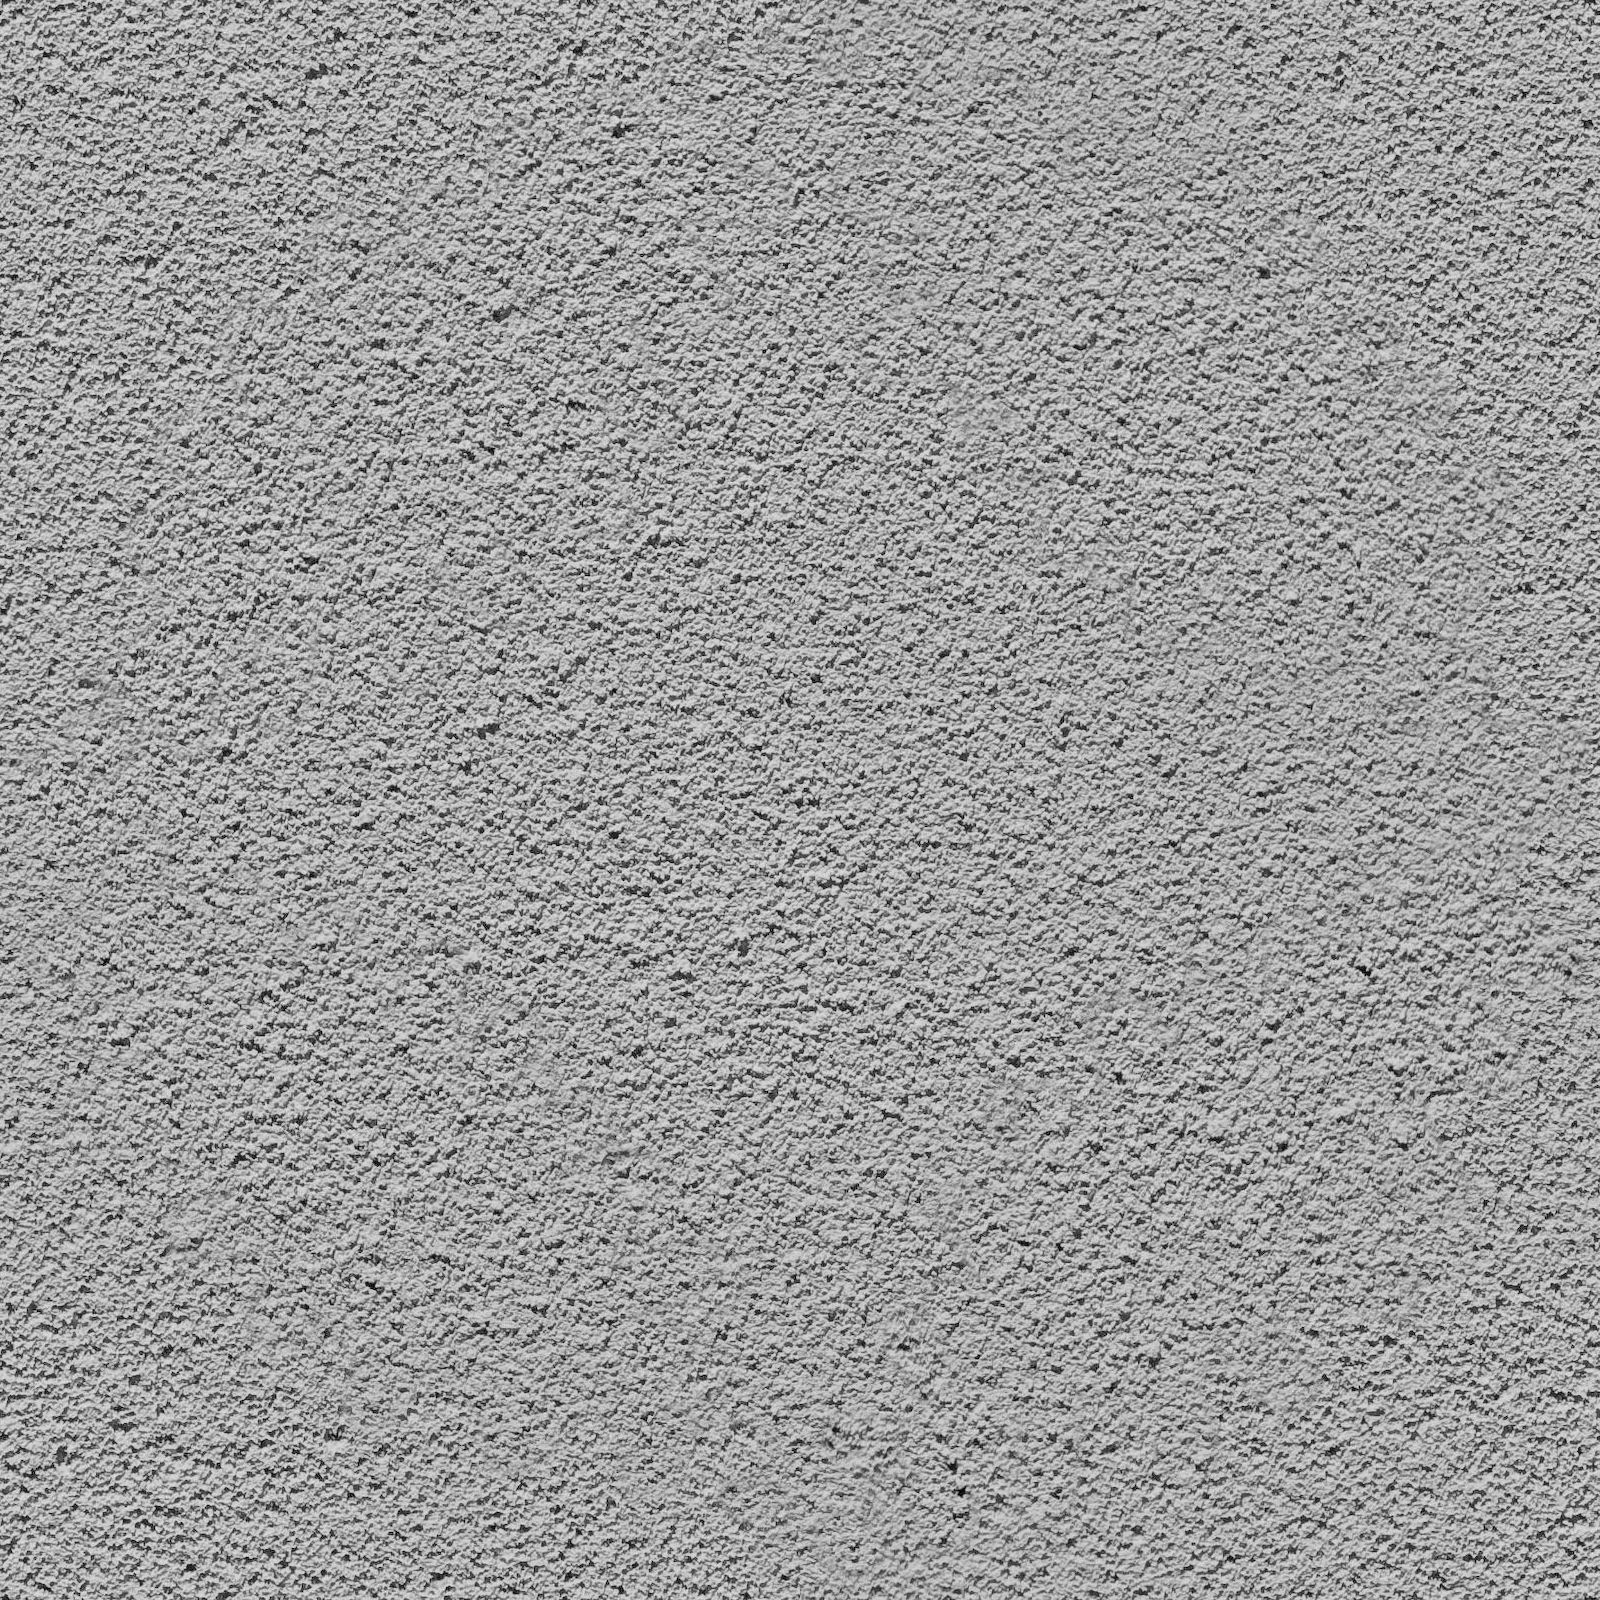 High Resolution Seamless Textures Free Seamless Stucco Wall Plaster